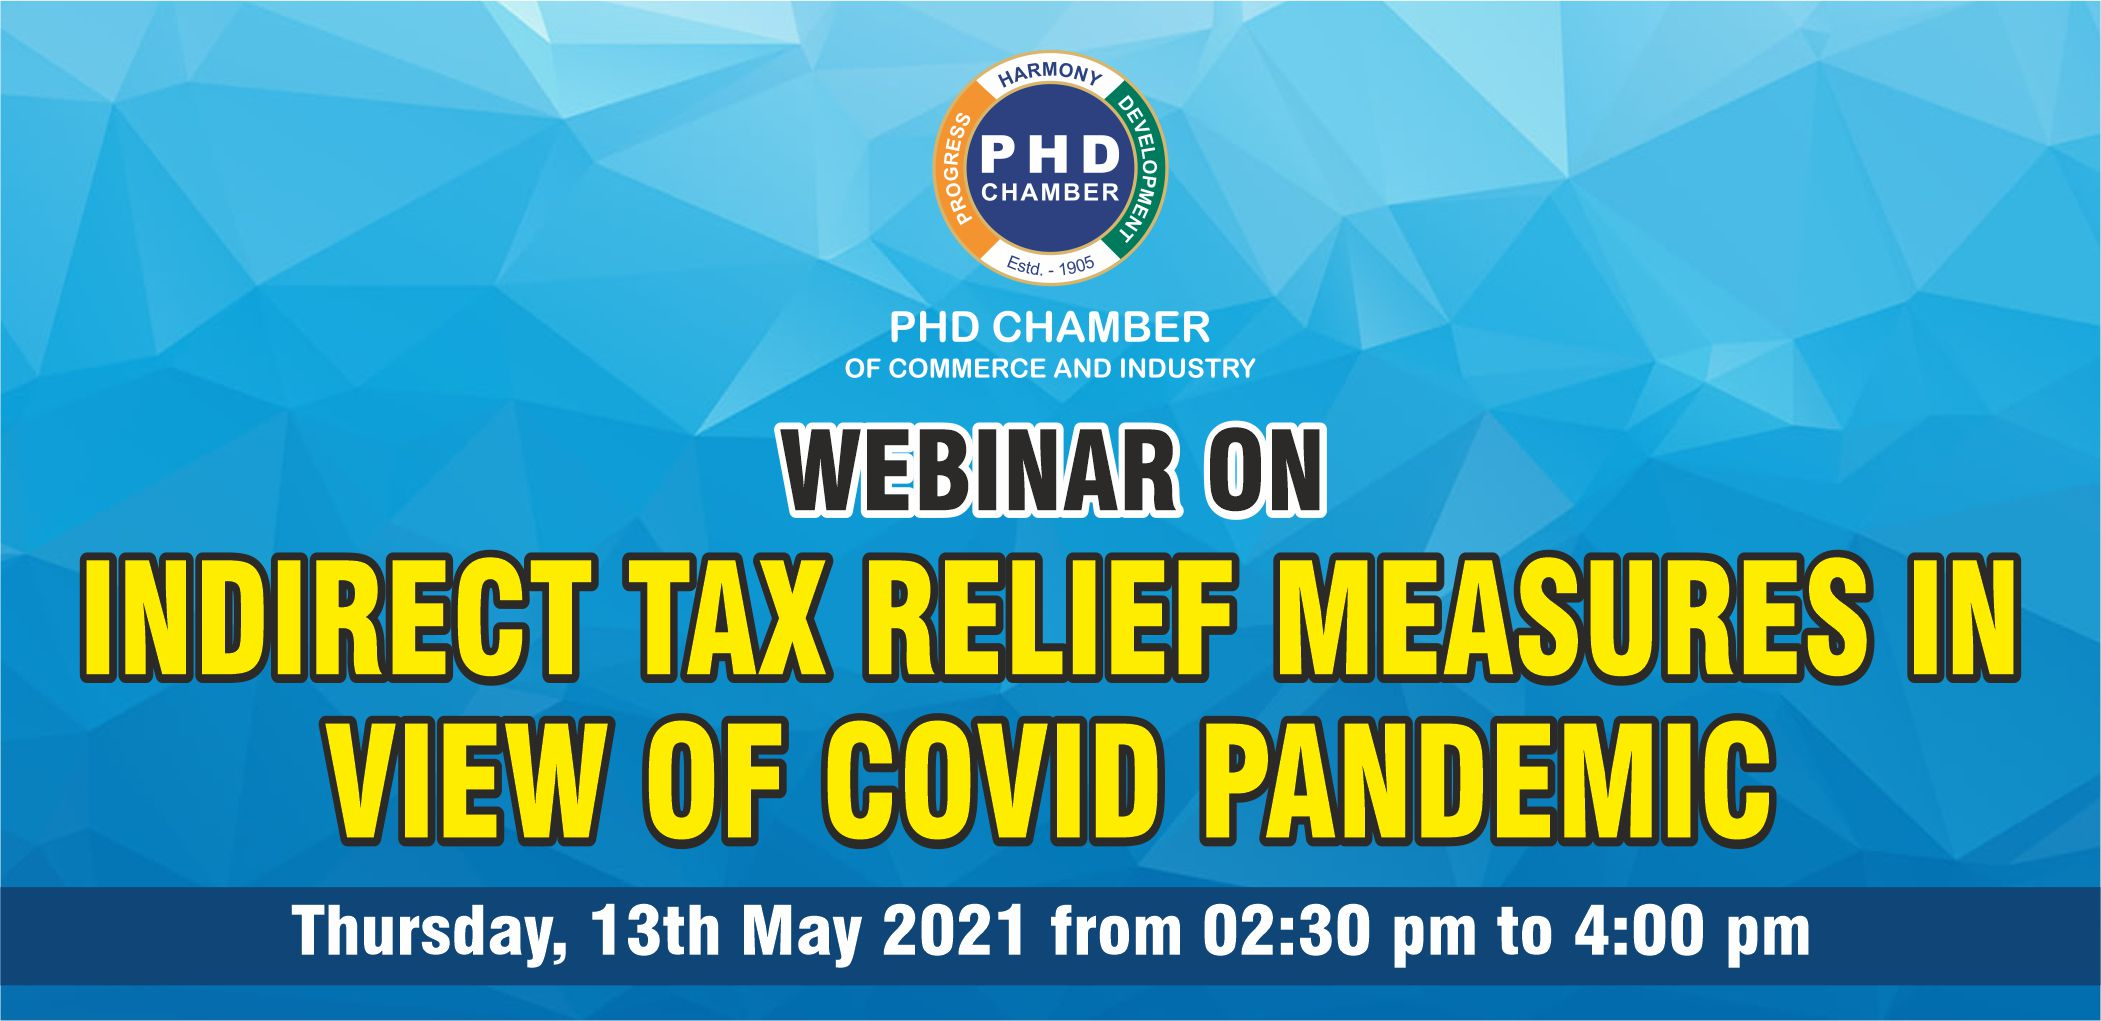 Webinar on Indirect Tax Relief Measures in view of Covid Pandemic